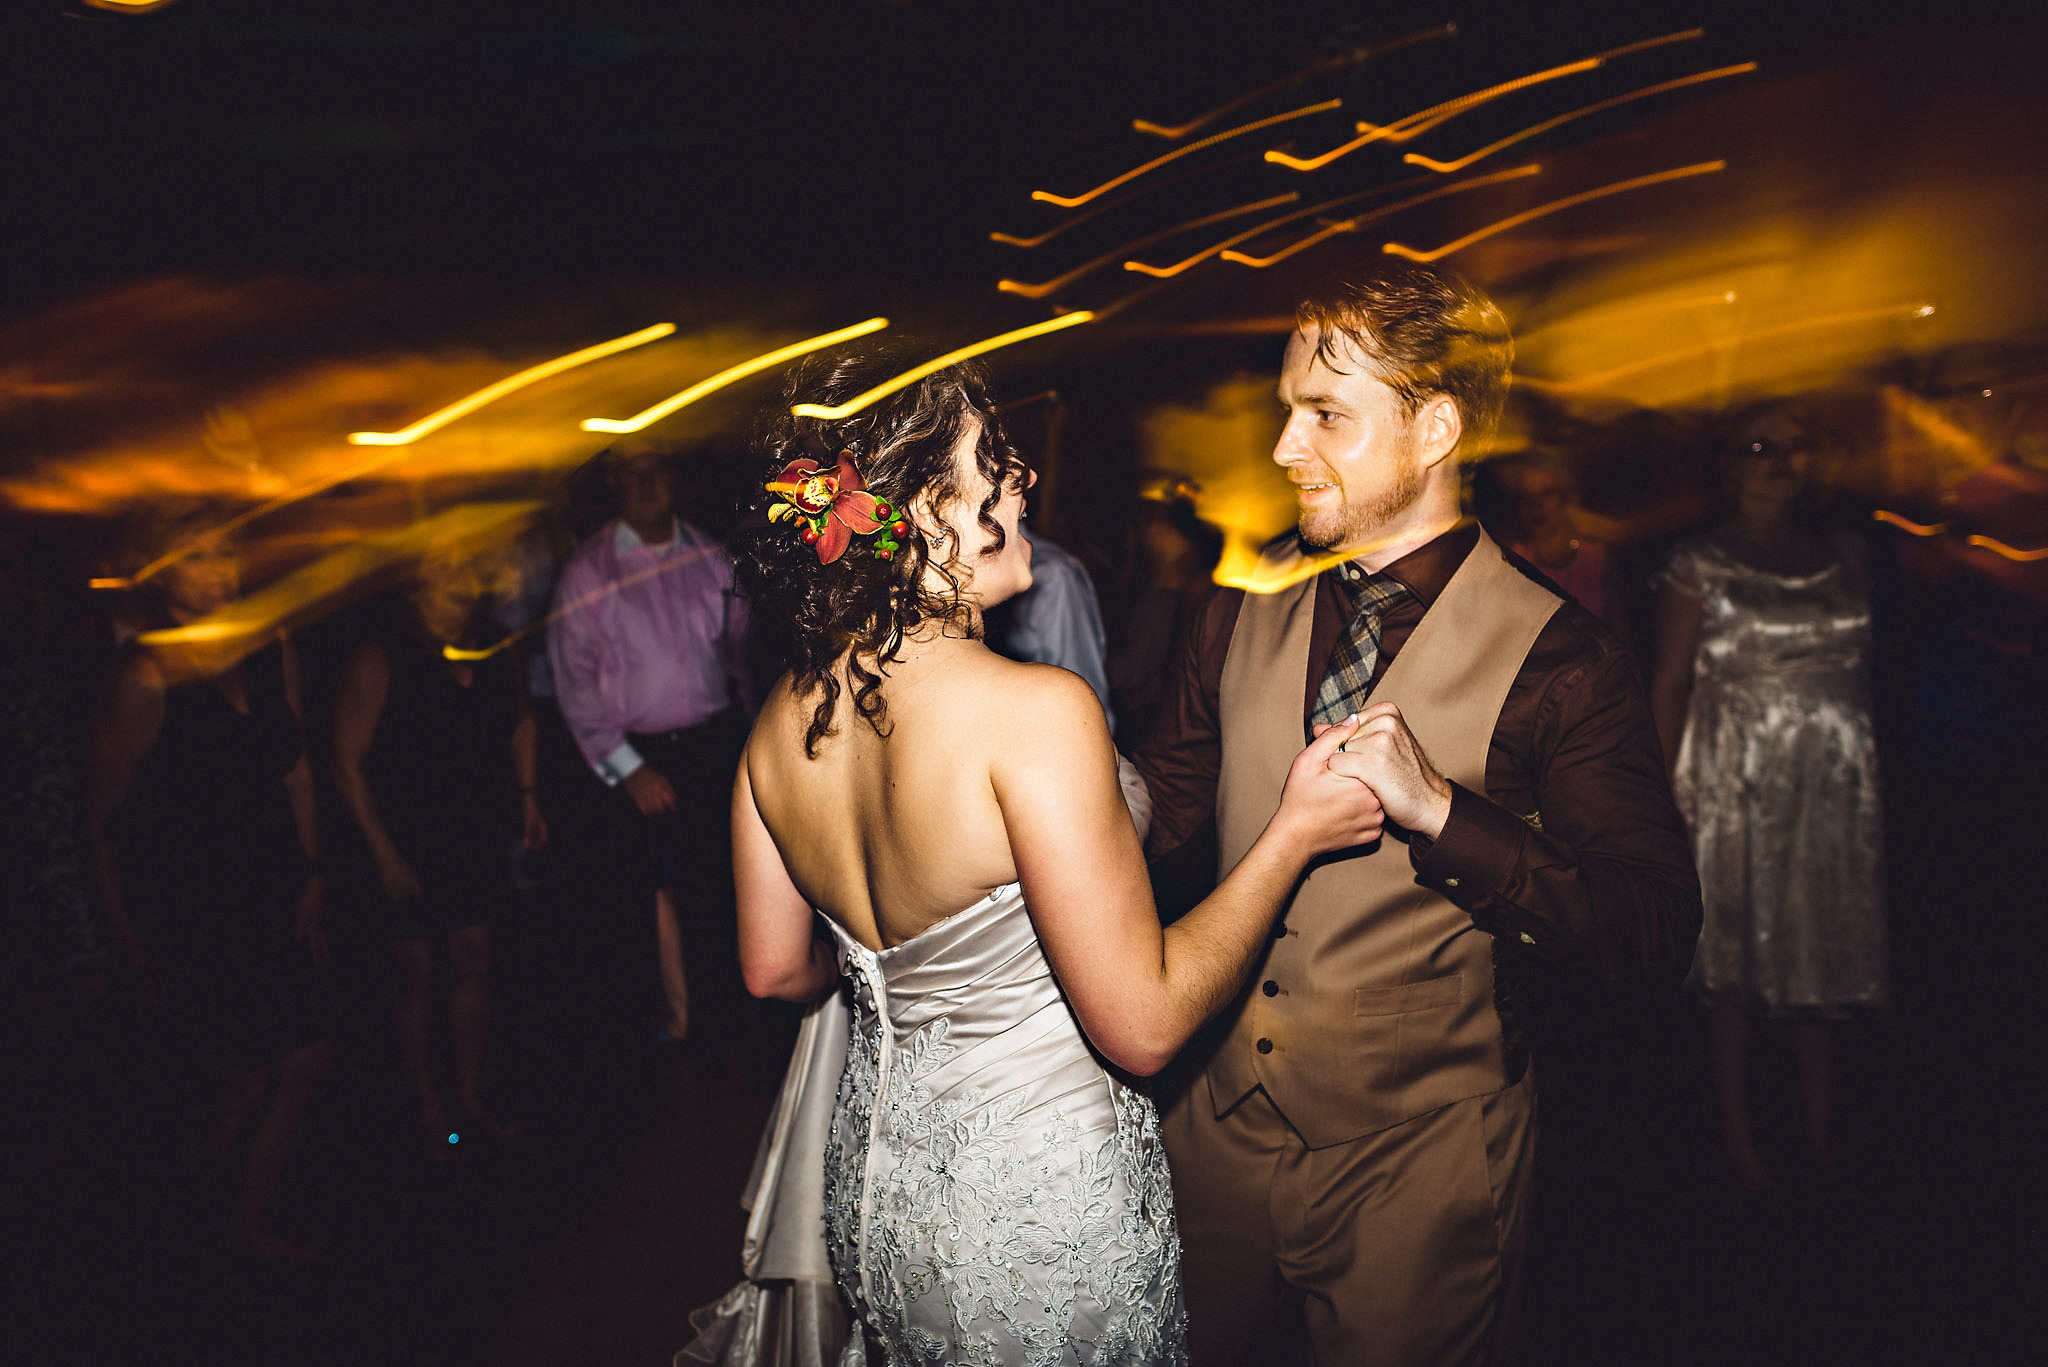 Eirik Halvorsen rustic wedding Fredericksburg Austin Texas wedding photographer-82.jpg